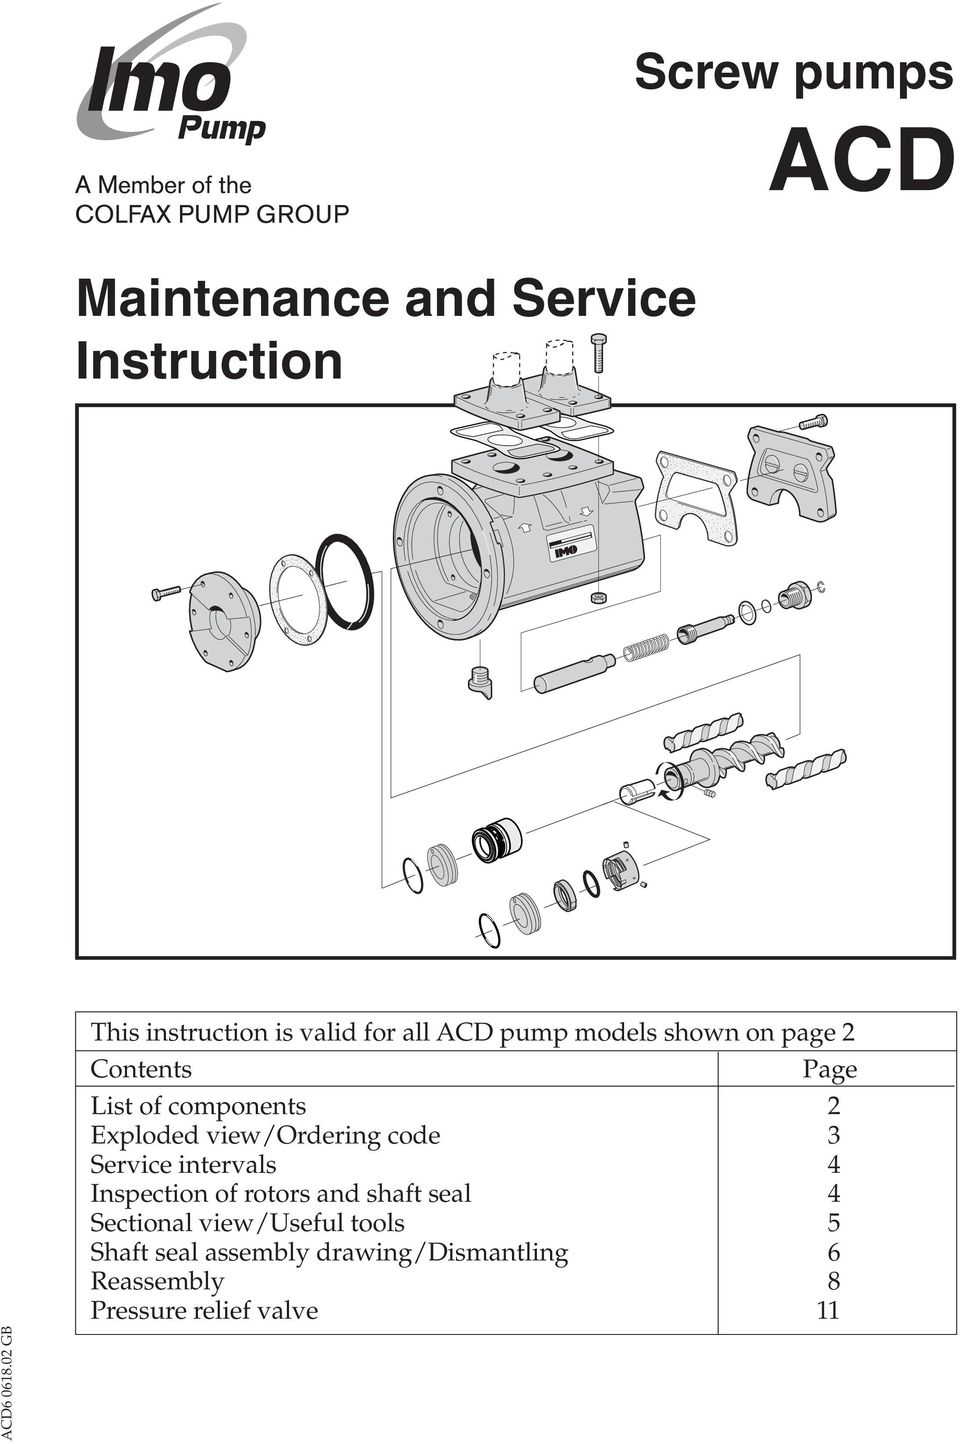 view/ordering code 3 Service intervals 4 Inspection of rotors and shaft seal 4